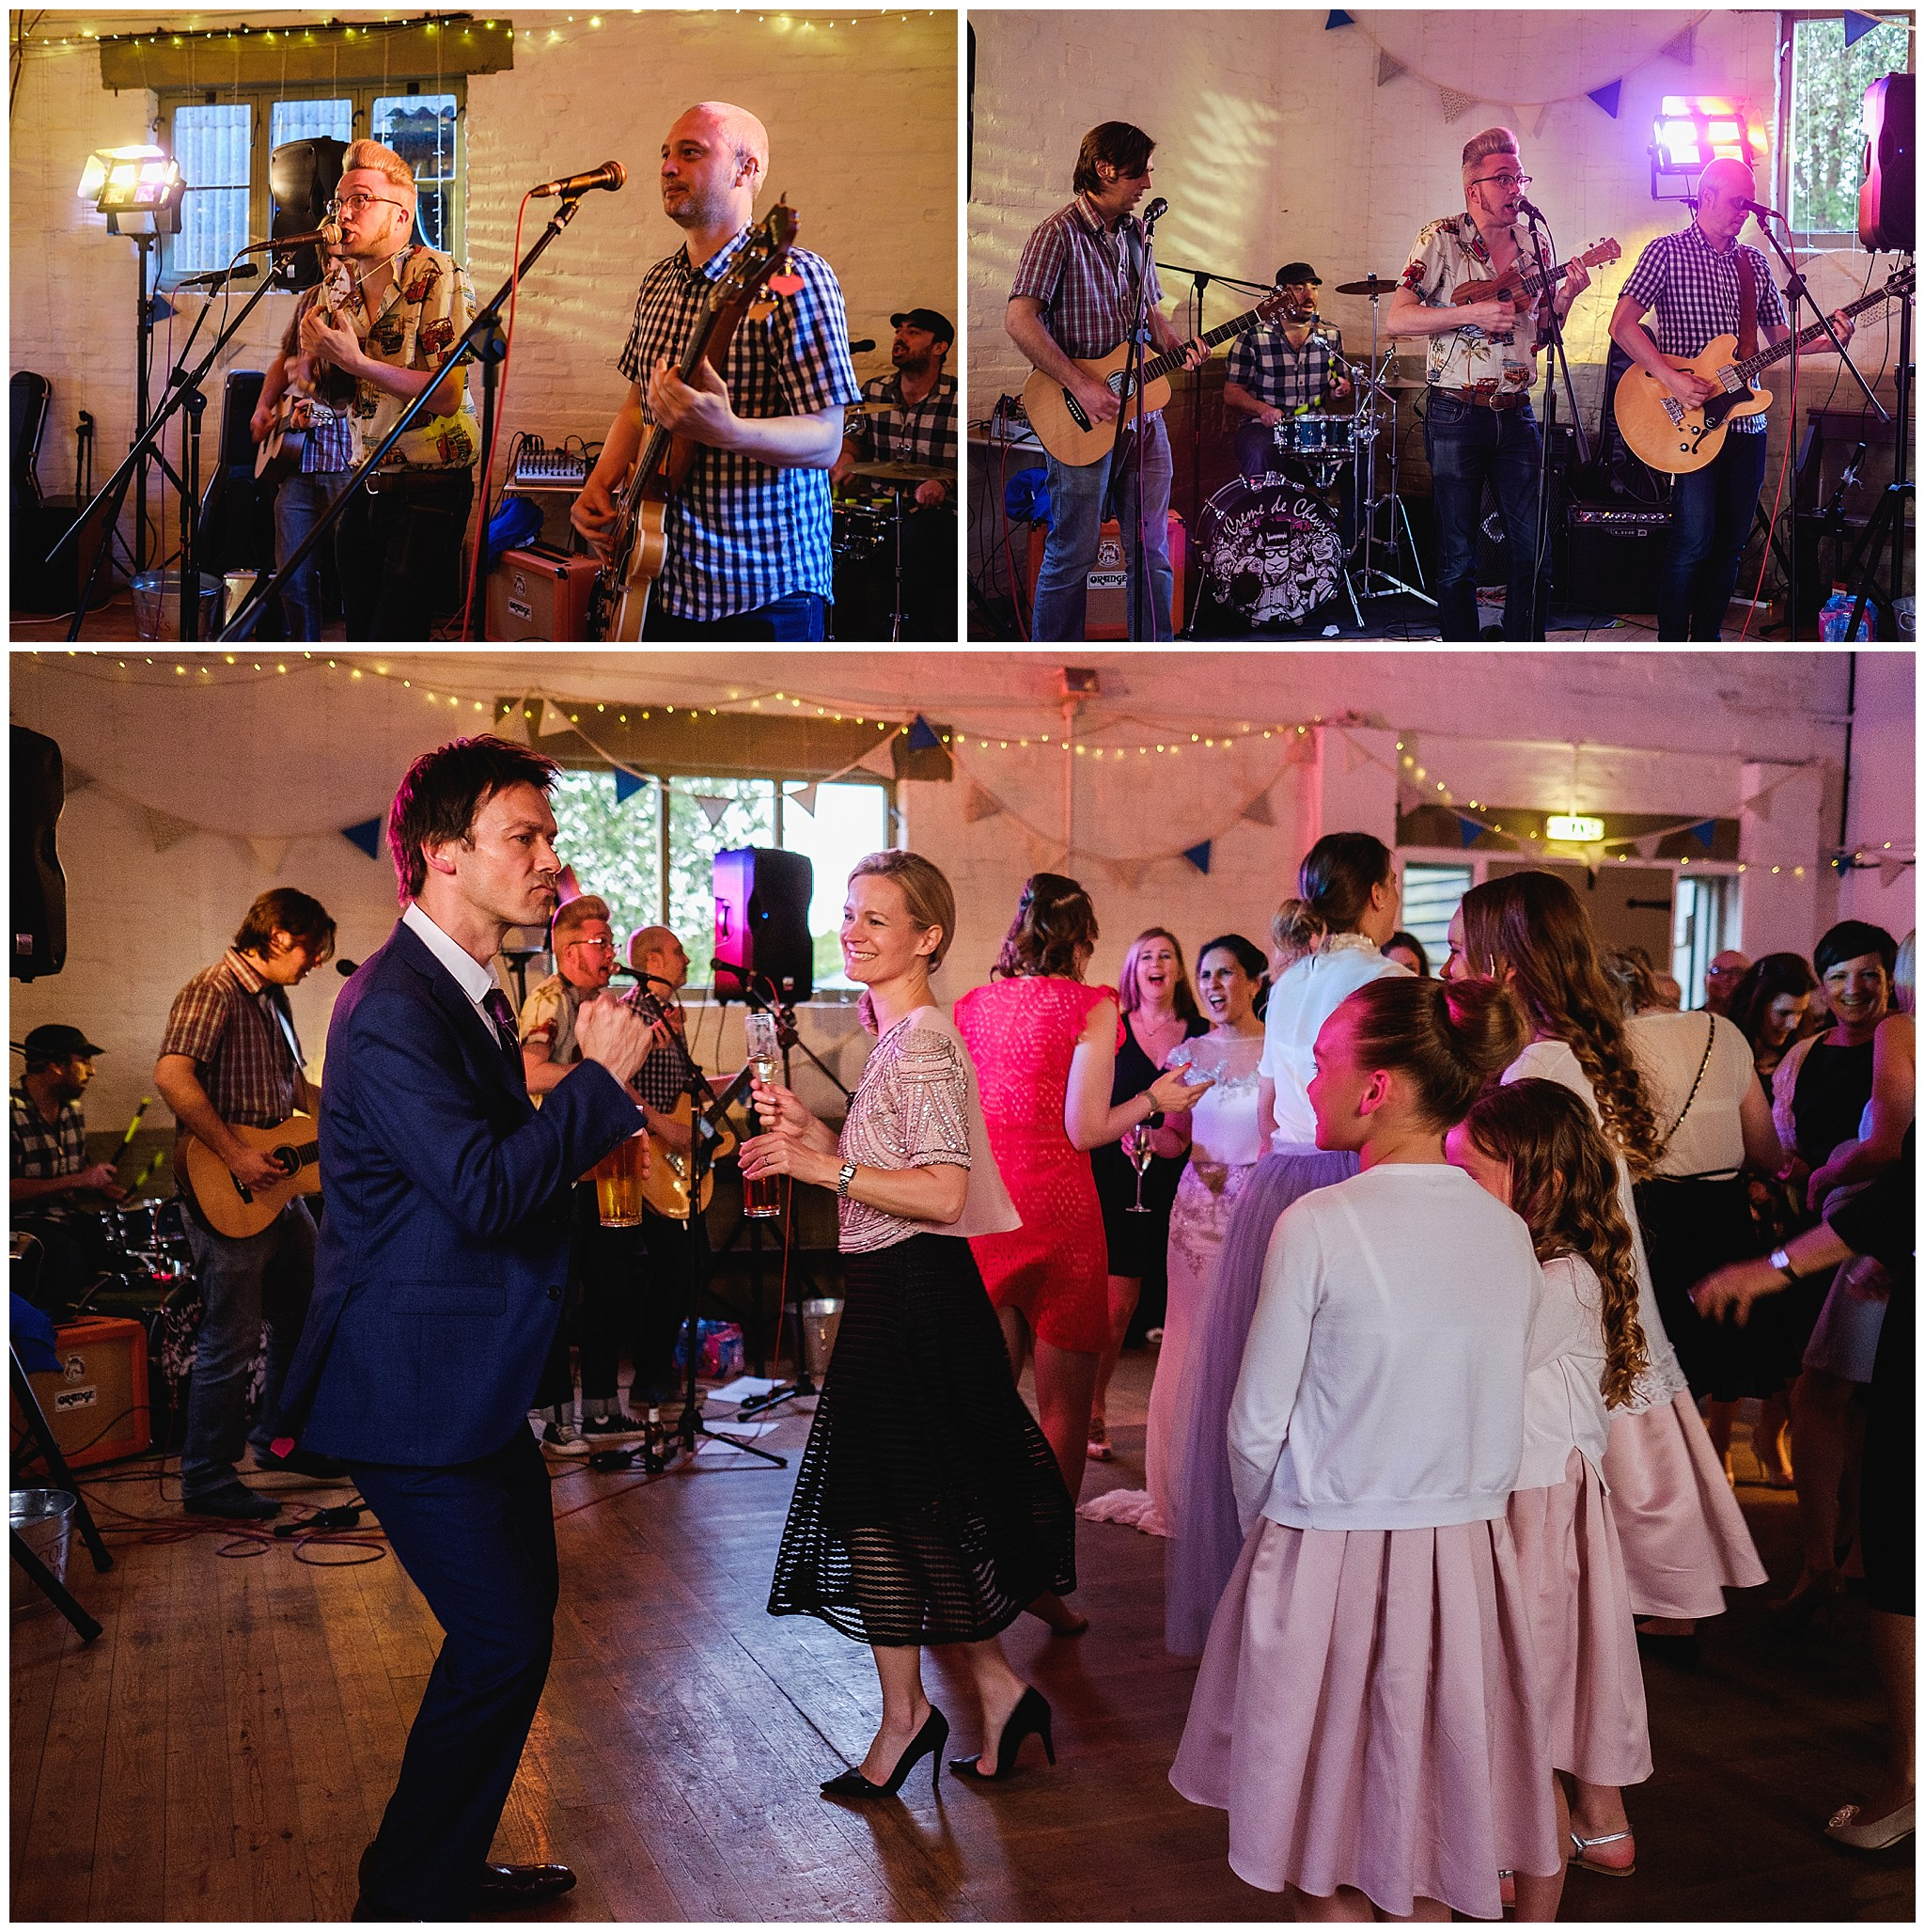 Wedding guests dancing as band plays